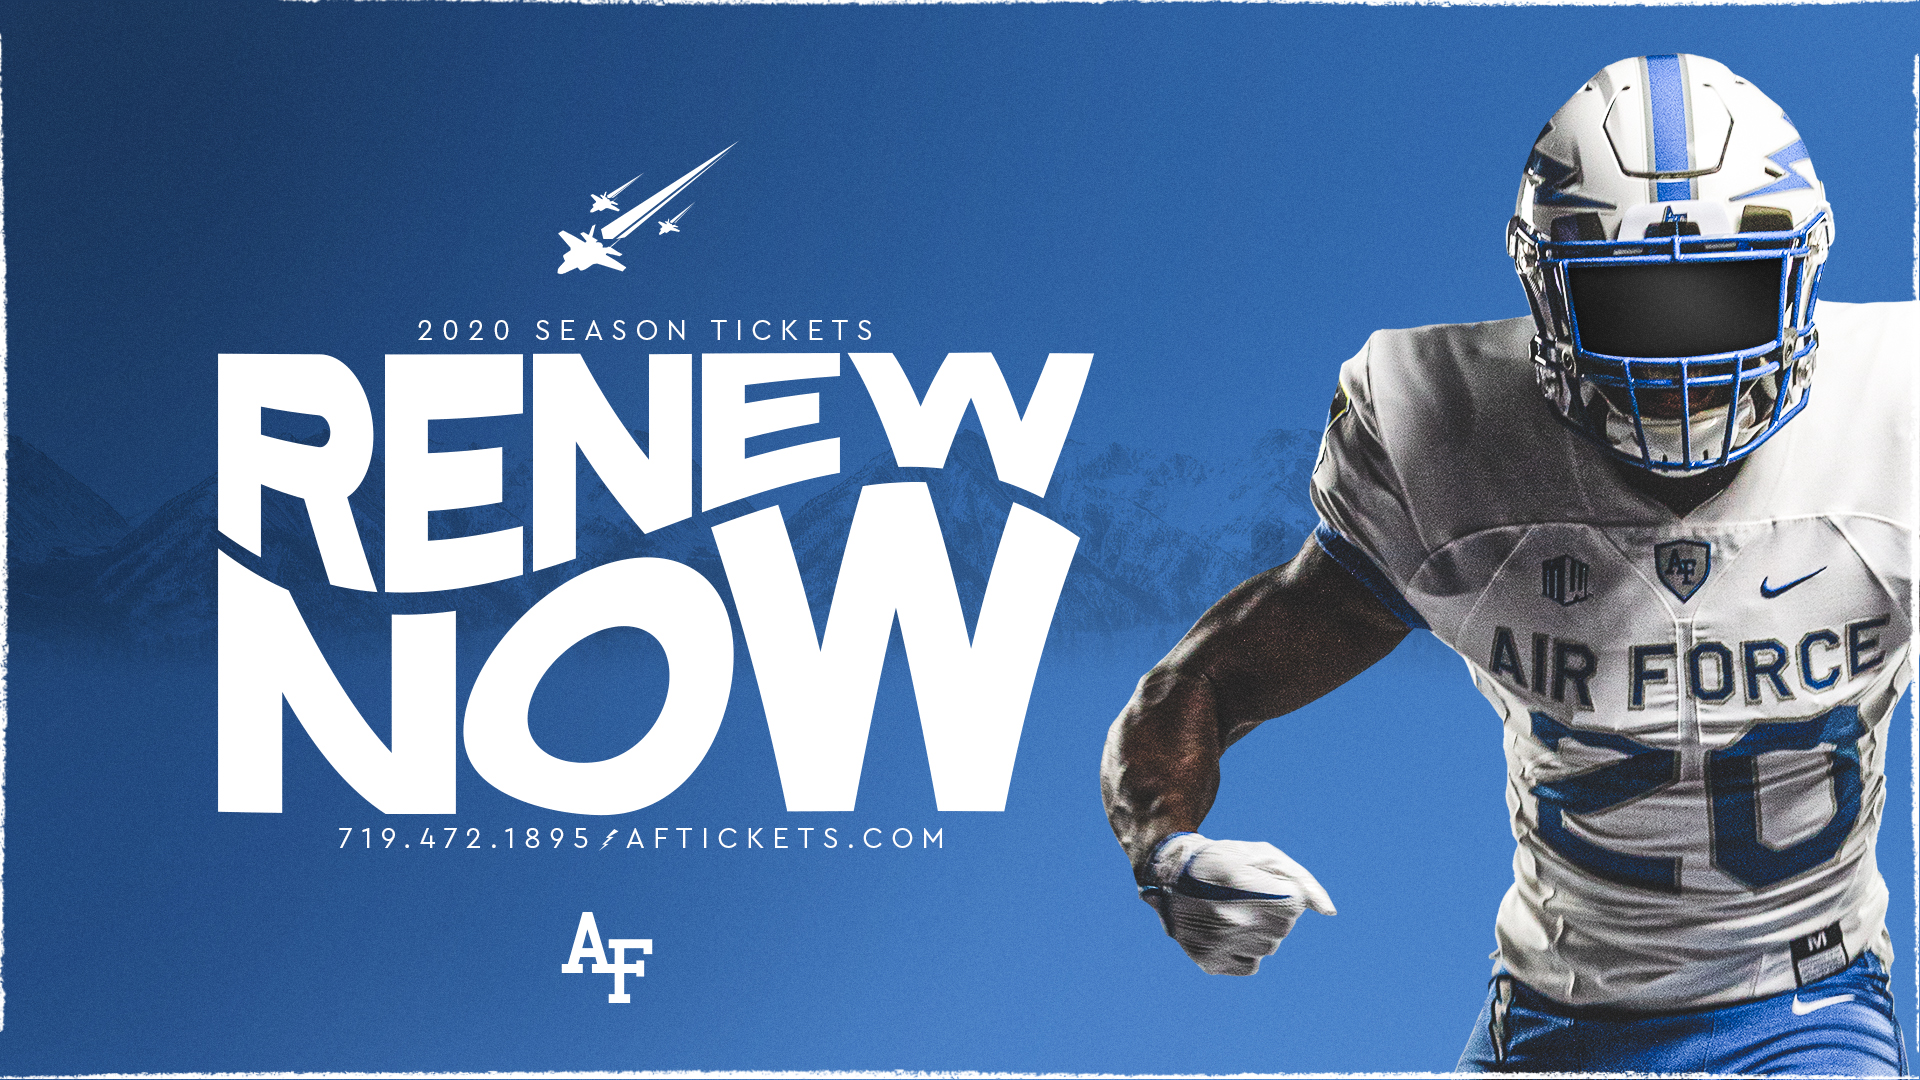 Air Force Tickets On Twitter Attention Af Football Season Ticket Holders 2020 Football Season Ticket Renewals Are Now Live Visit Https T Co Wgvti4ozg5 And Log Into Your Account To Renew Your Tickets Or Call The